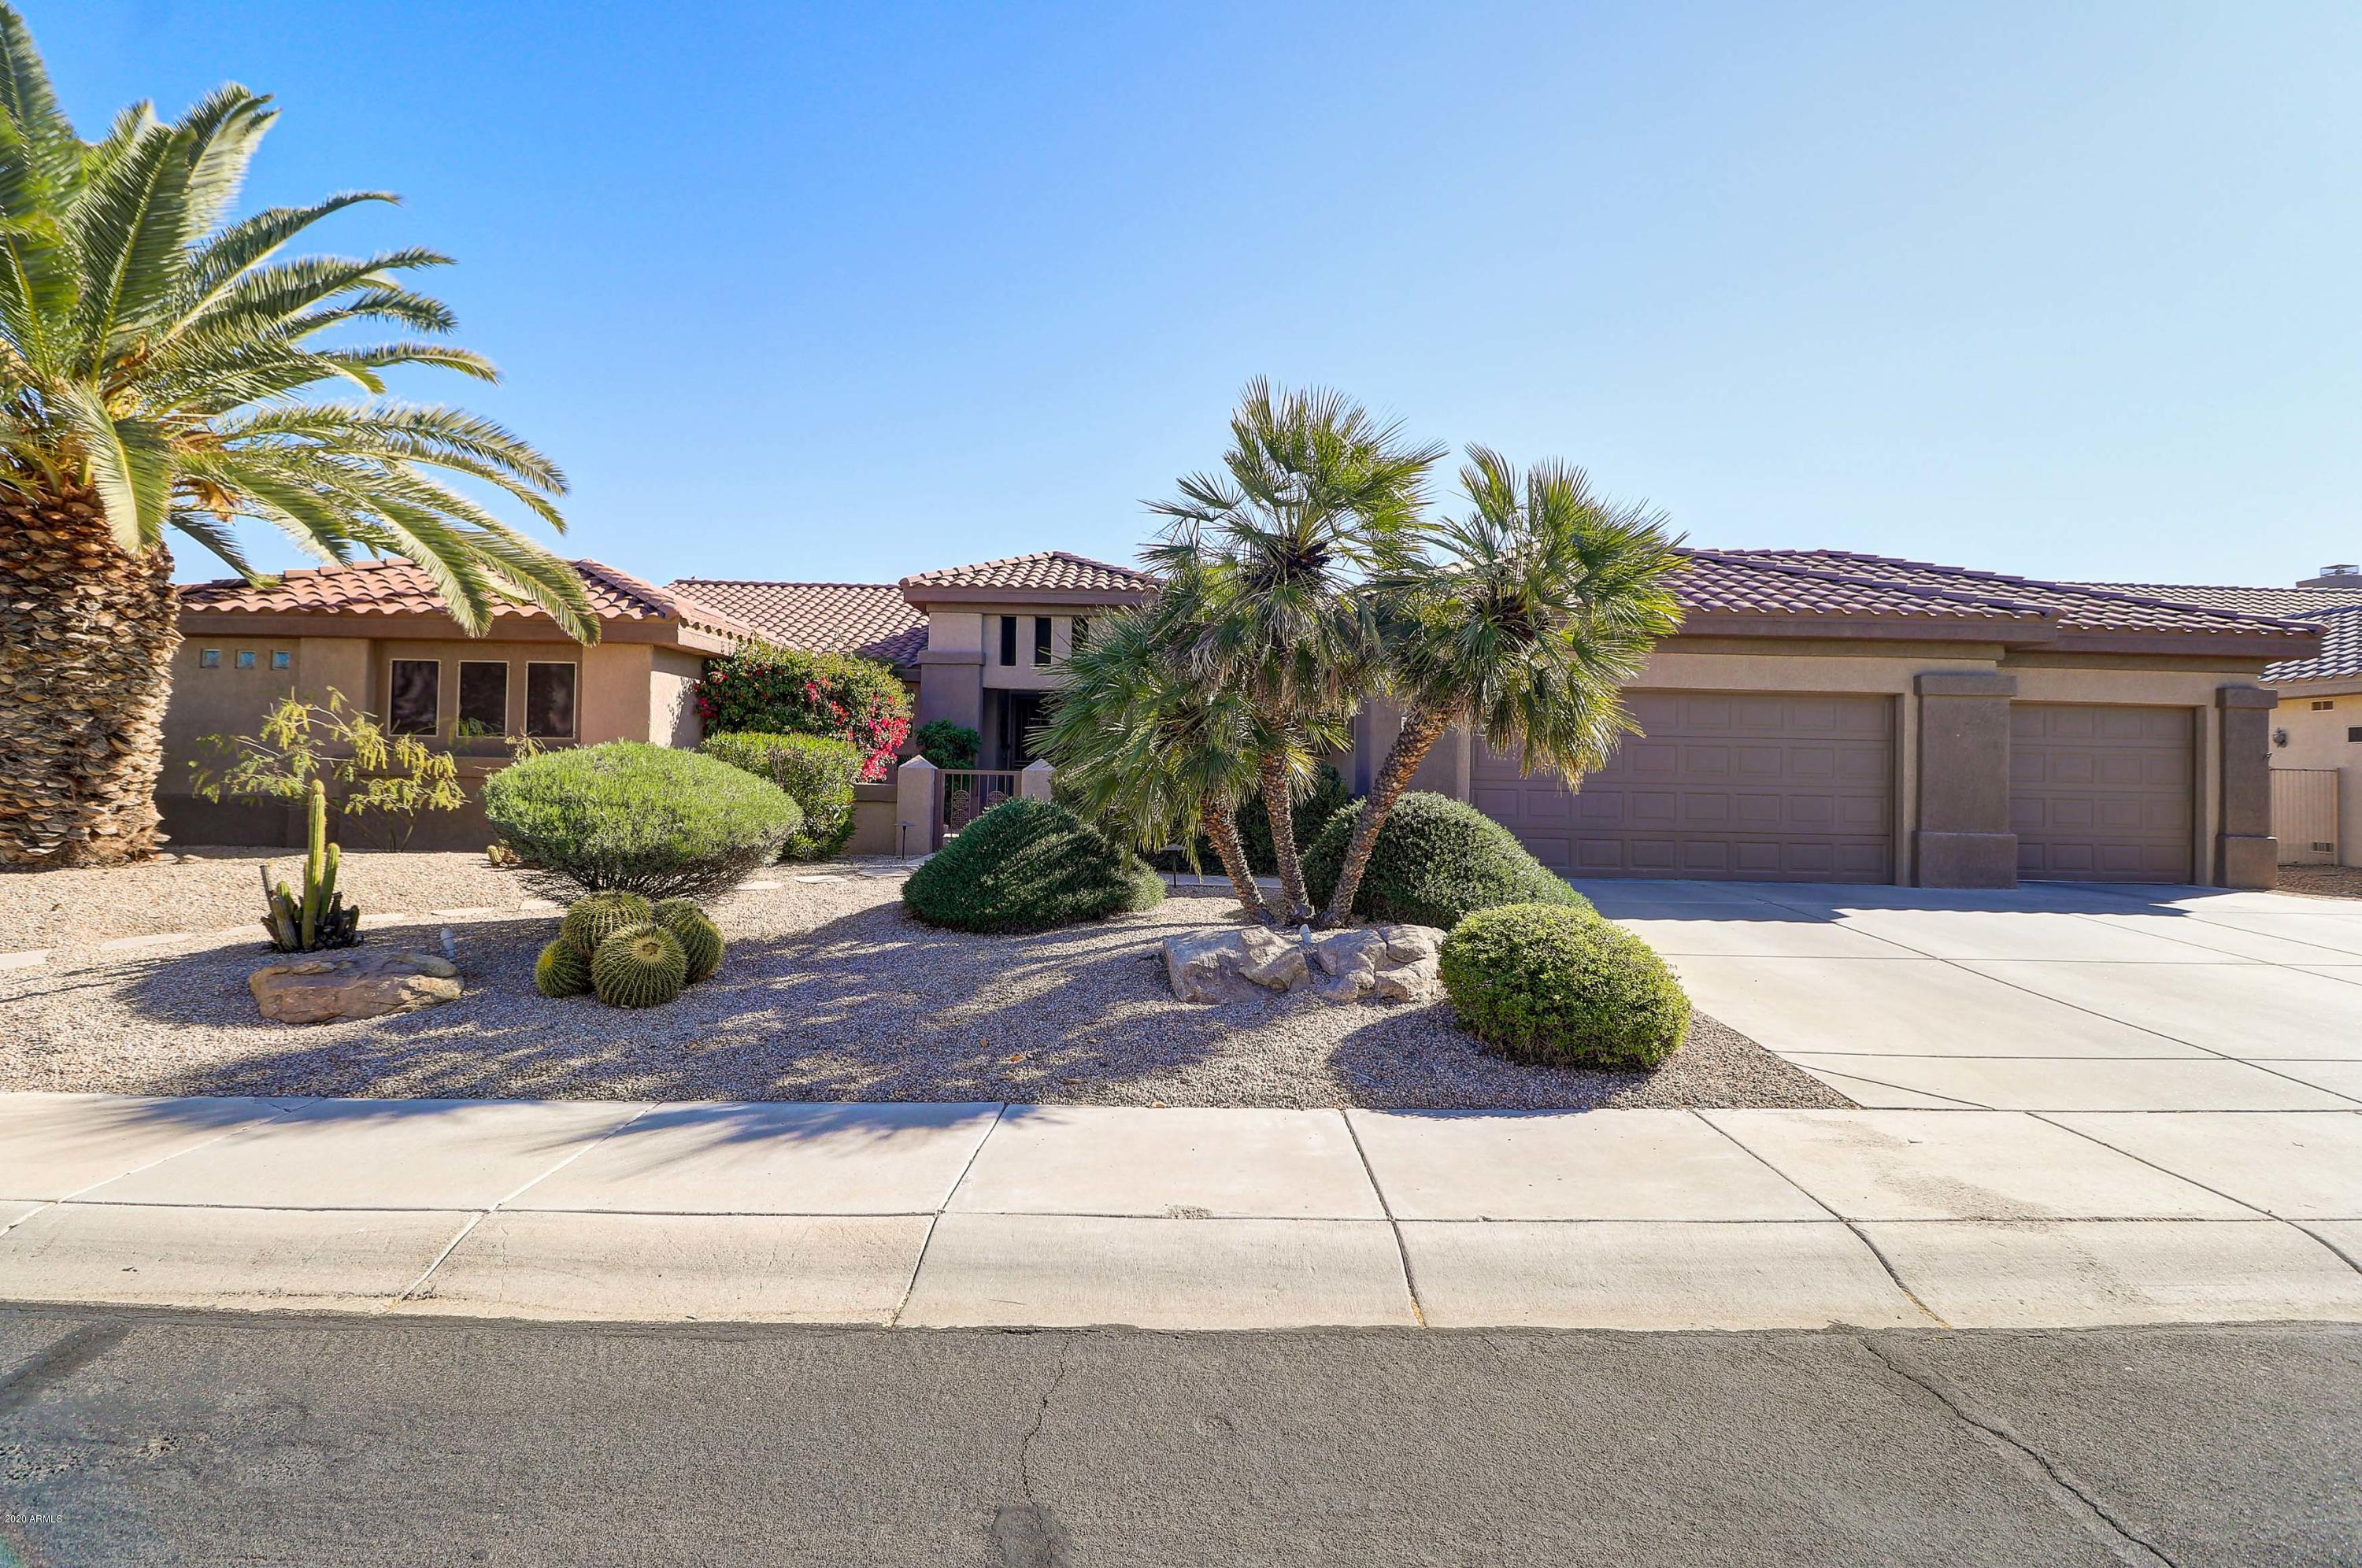 Photo of 18191 N KEY ESTRELLA Drive, Surprise, AZ 85374